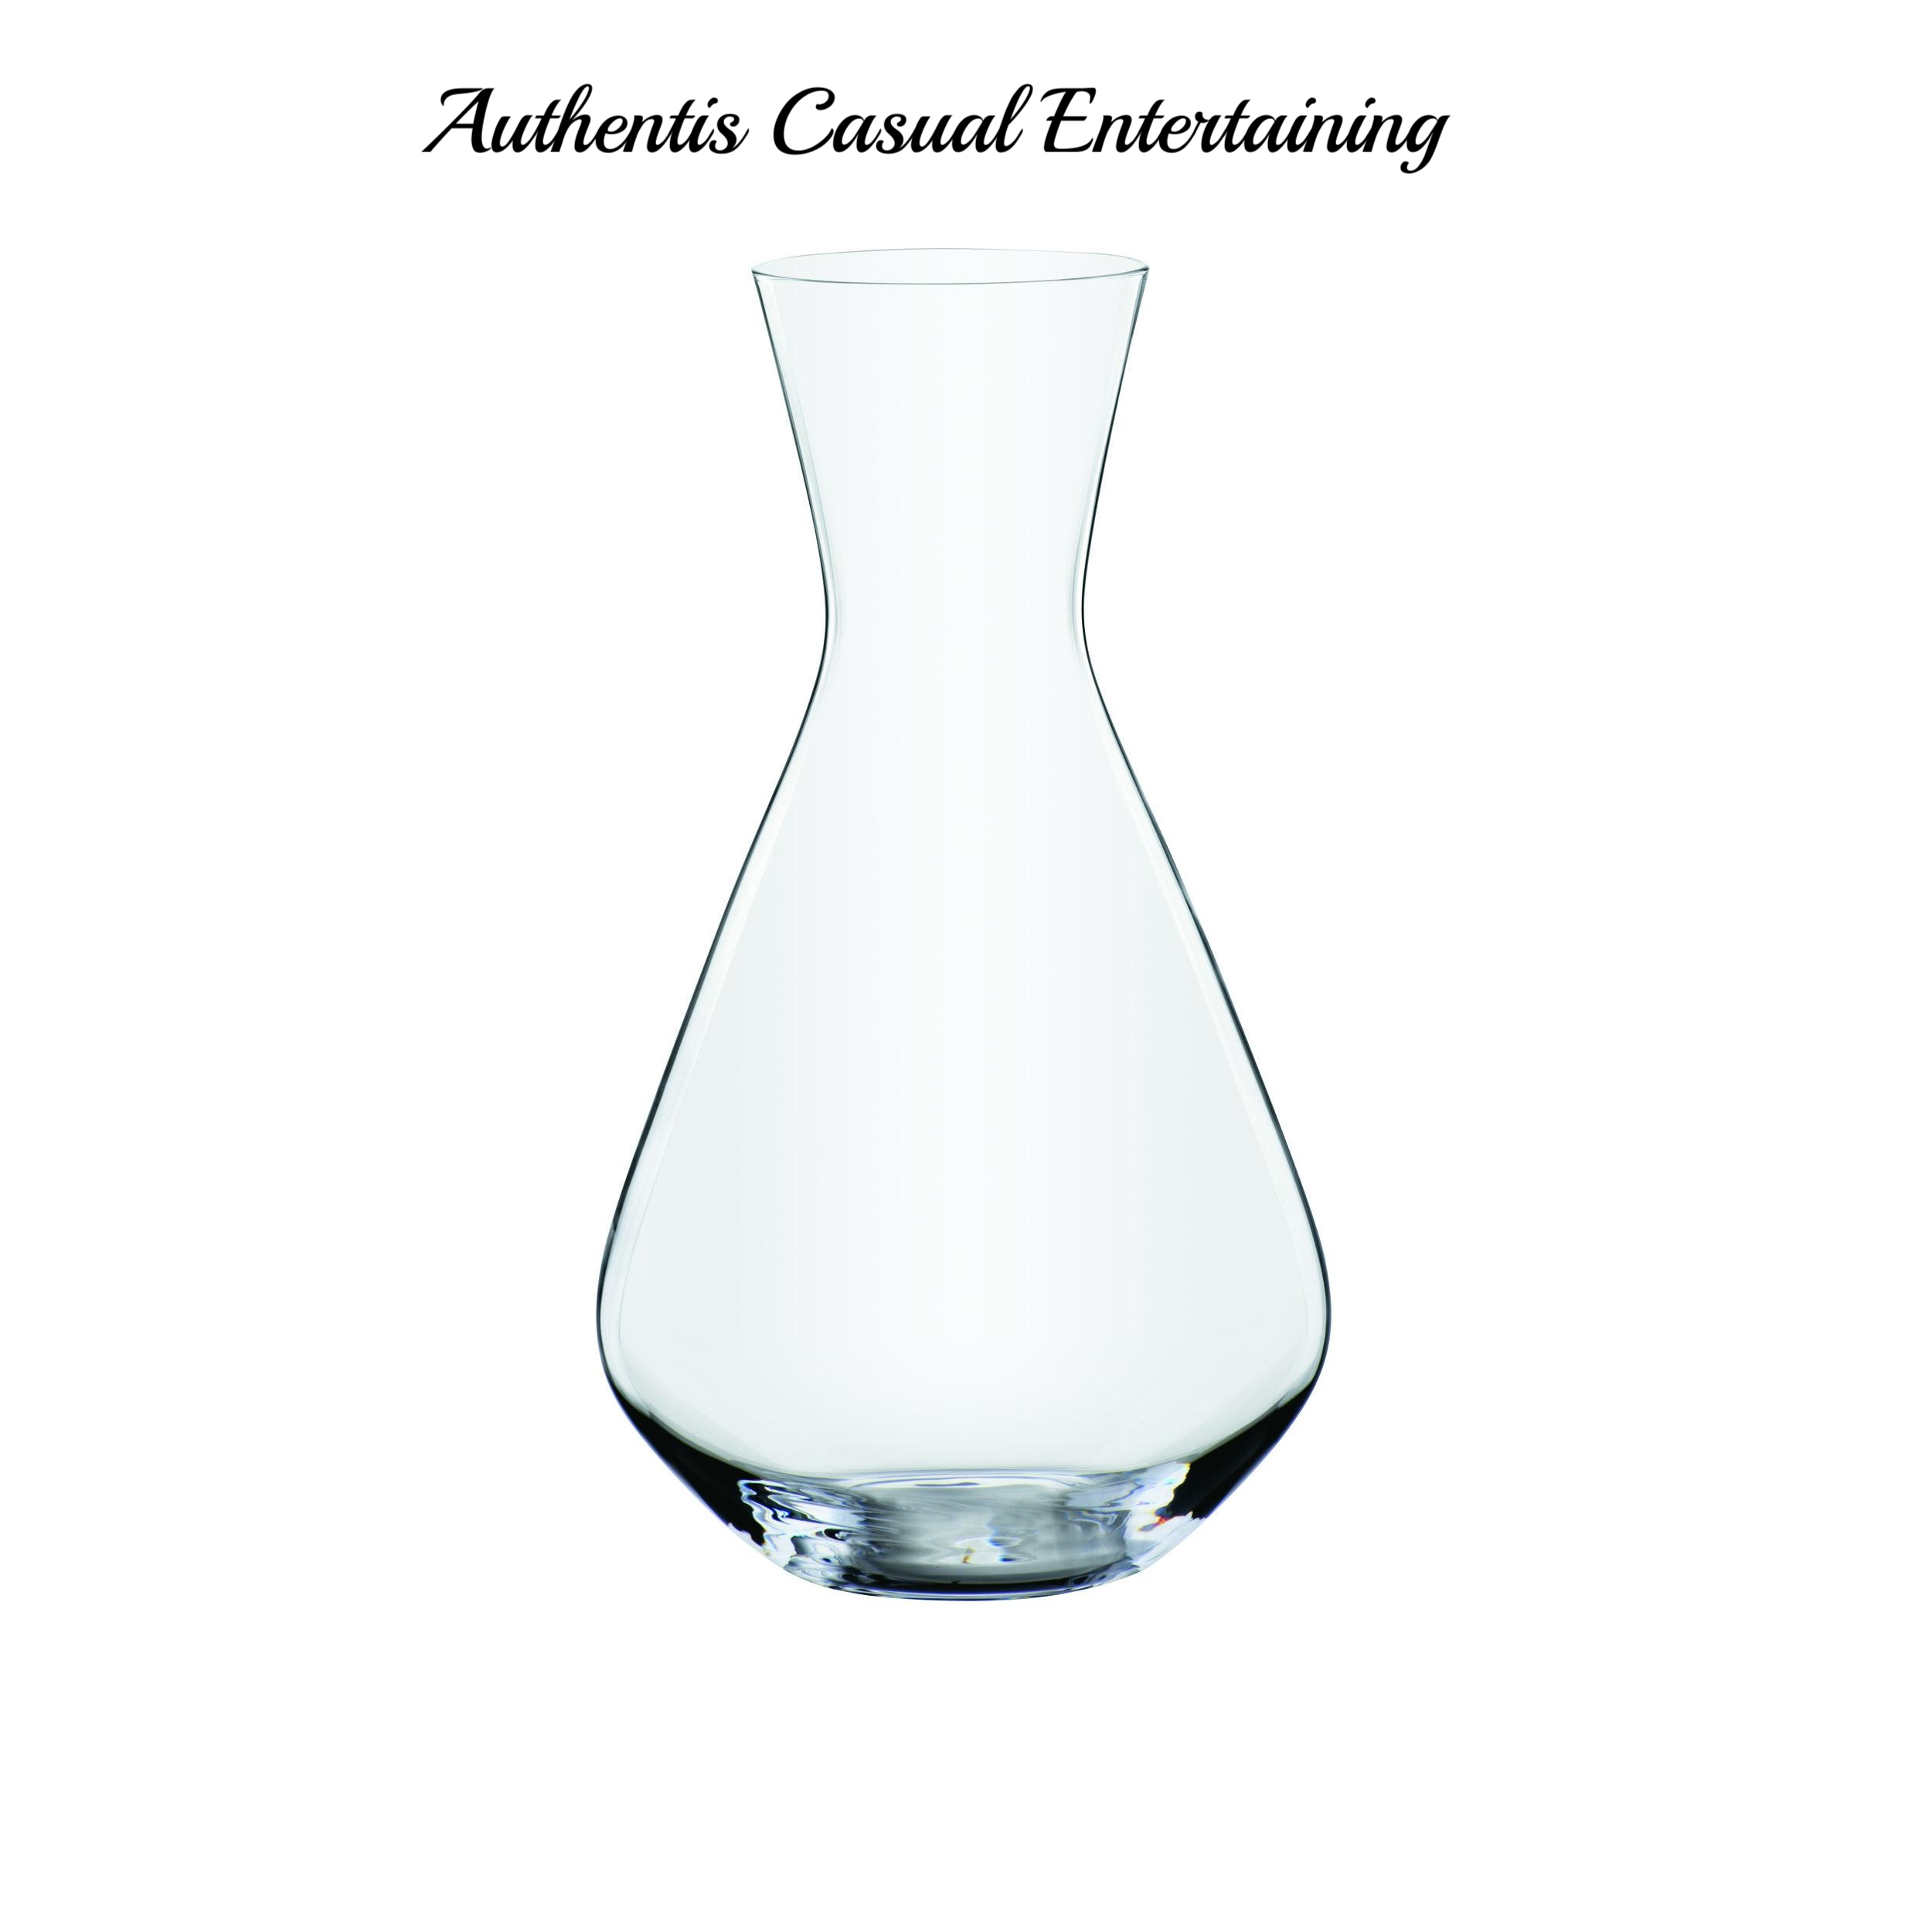 4800188 Authentis Casual Entertaining Decanter 1400ml.jpg